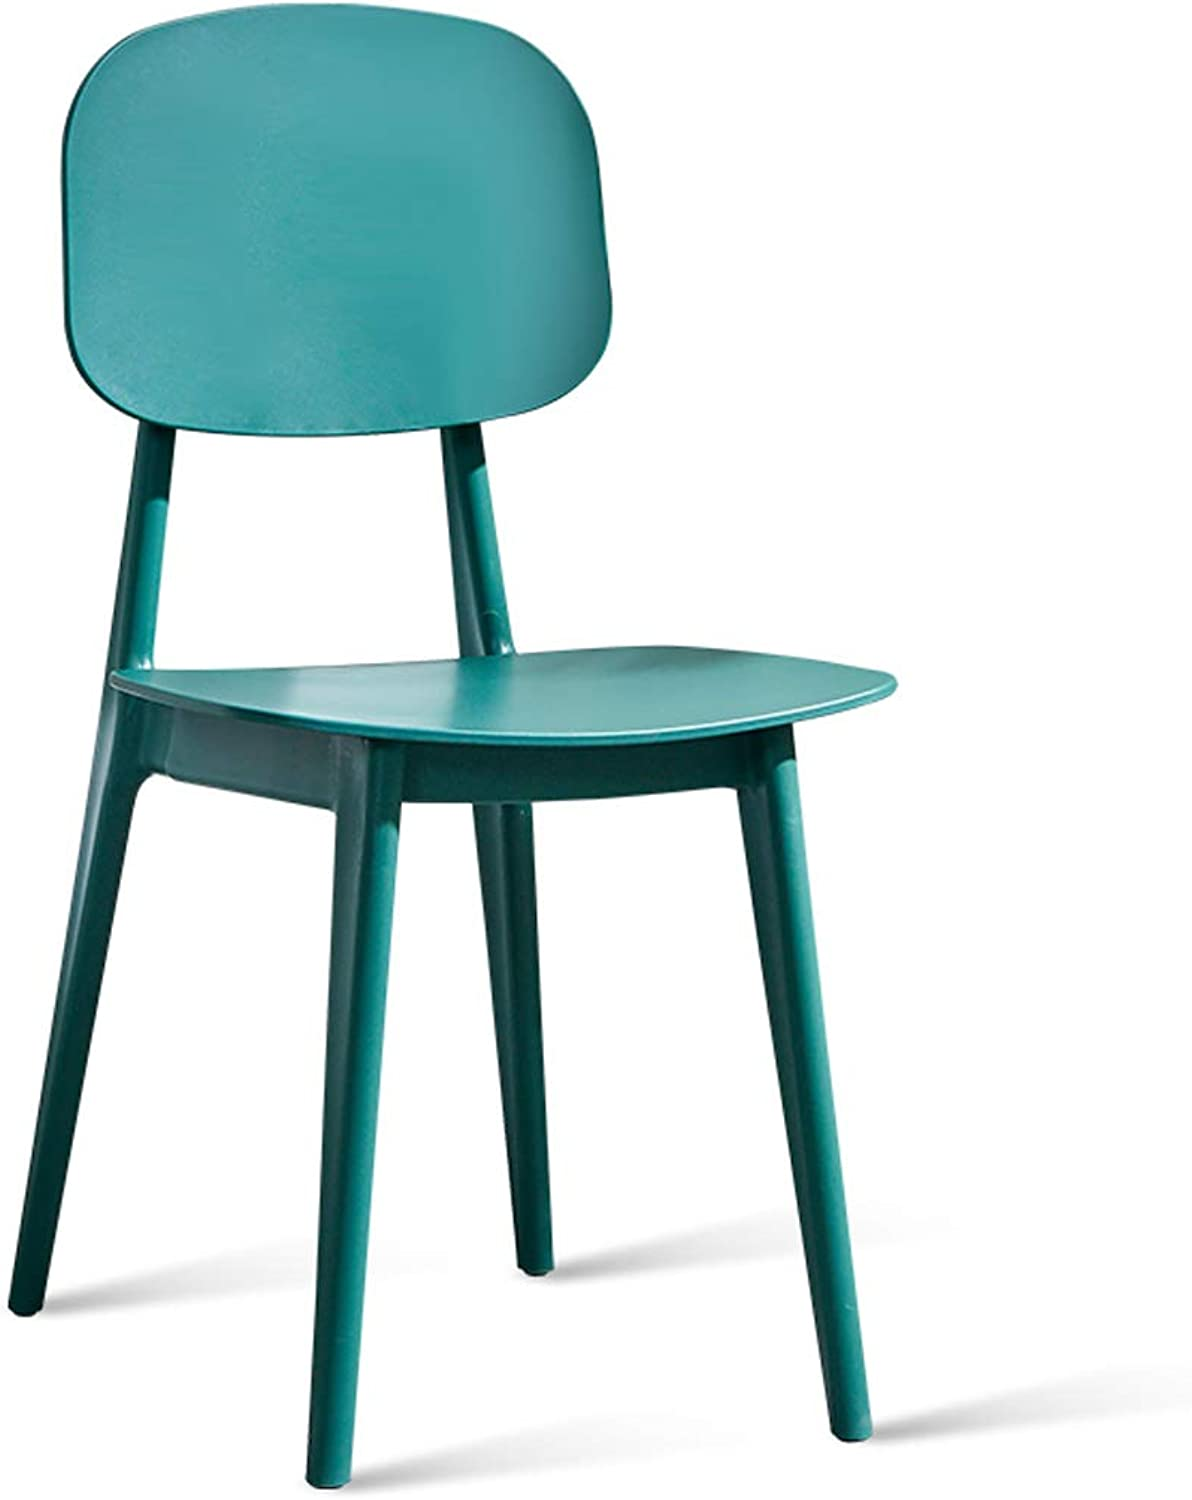 LRW Modern Nordic Dining Chair, Adult Back Chair, Dining Room Stool, Desk and Chair, Plastic Leisure Chair, Green